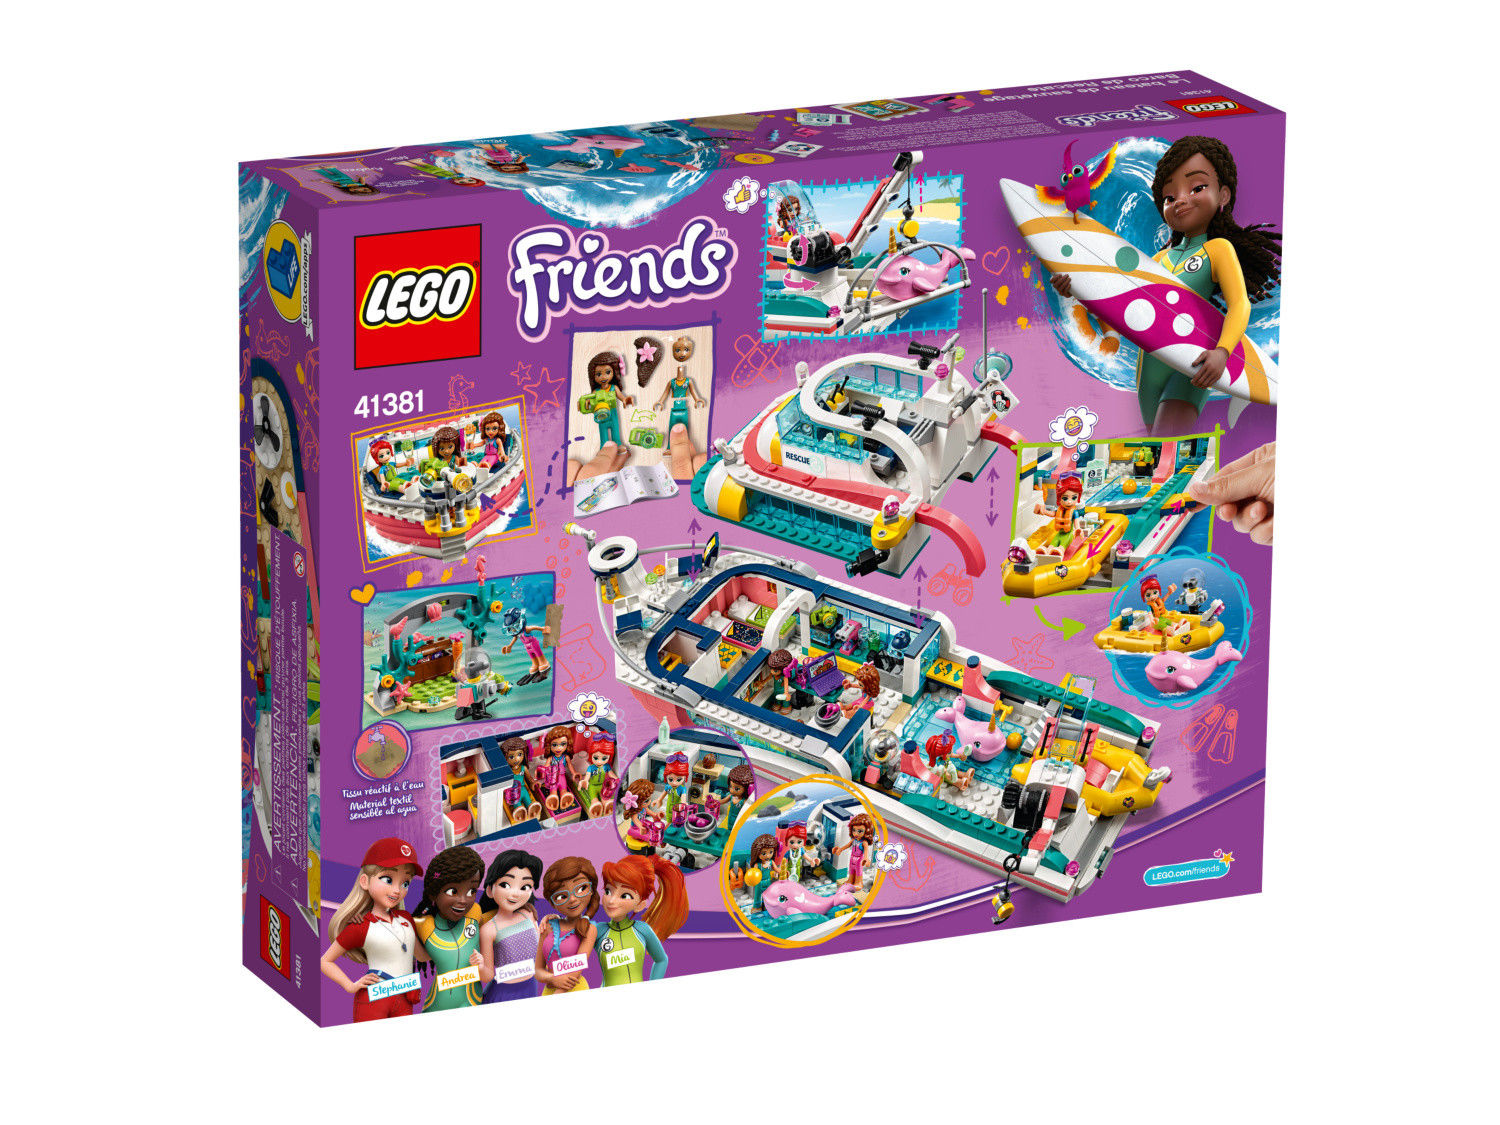 Rescue Mission Boat - LEGO Friends set 41381